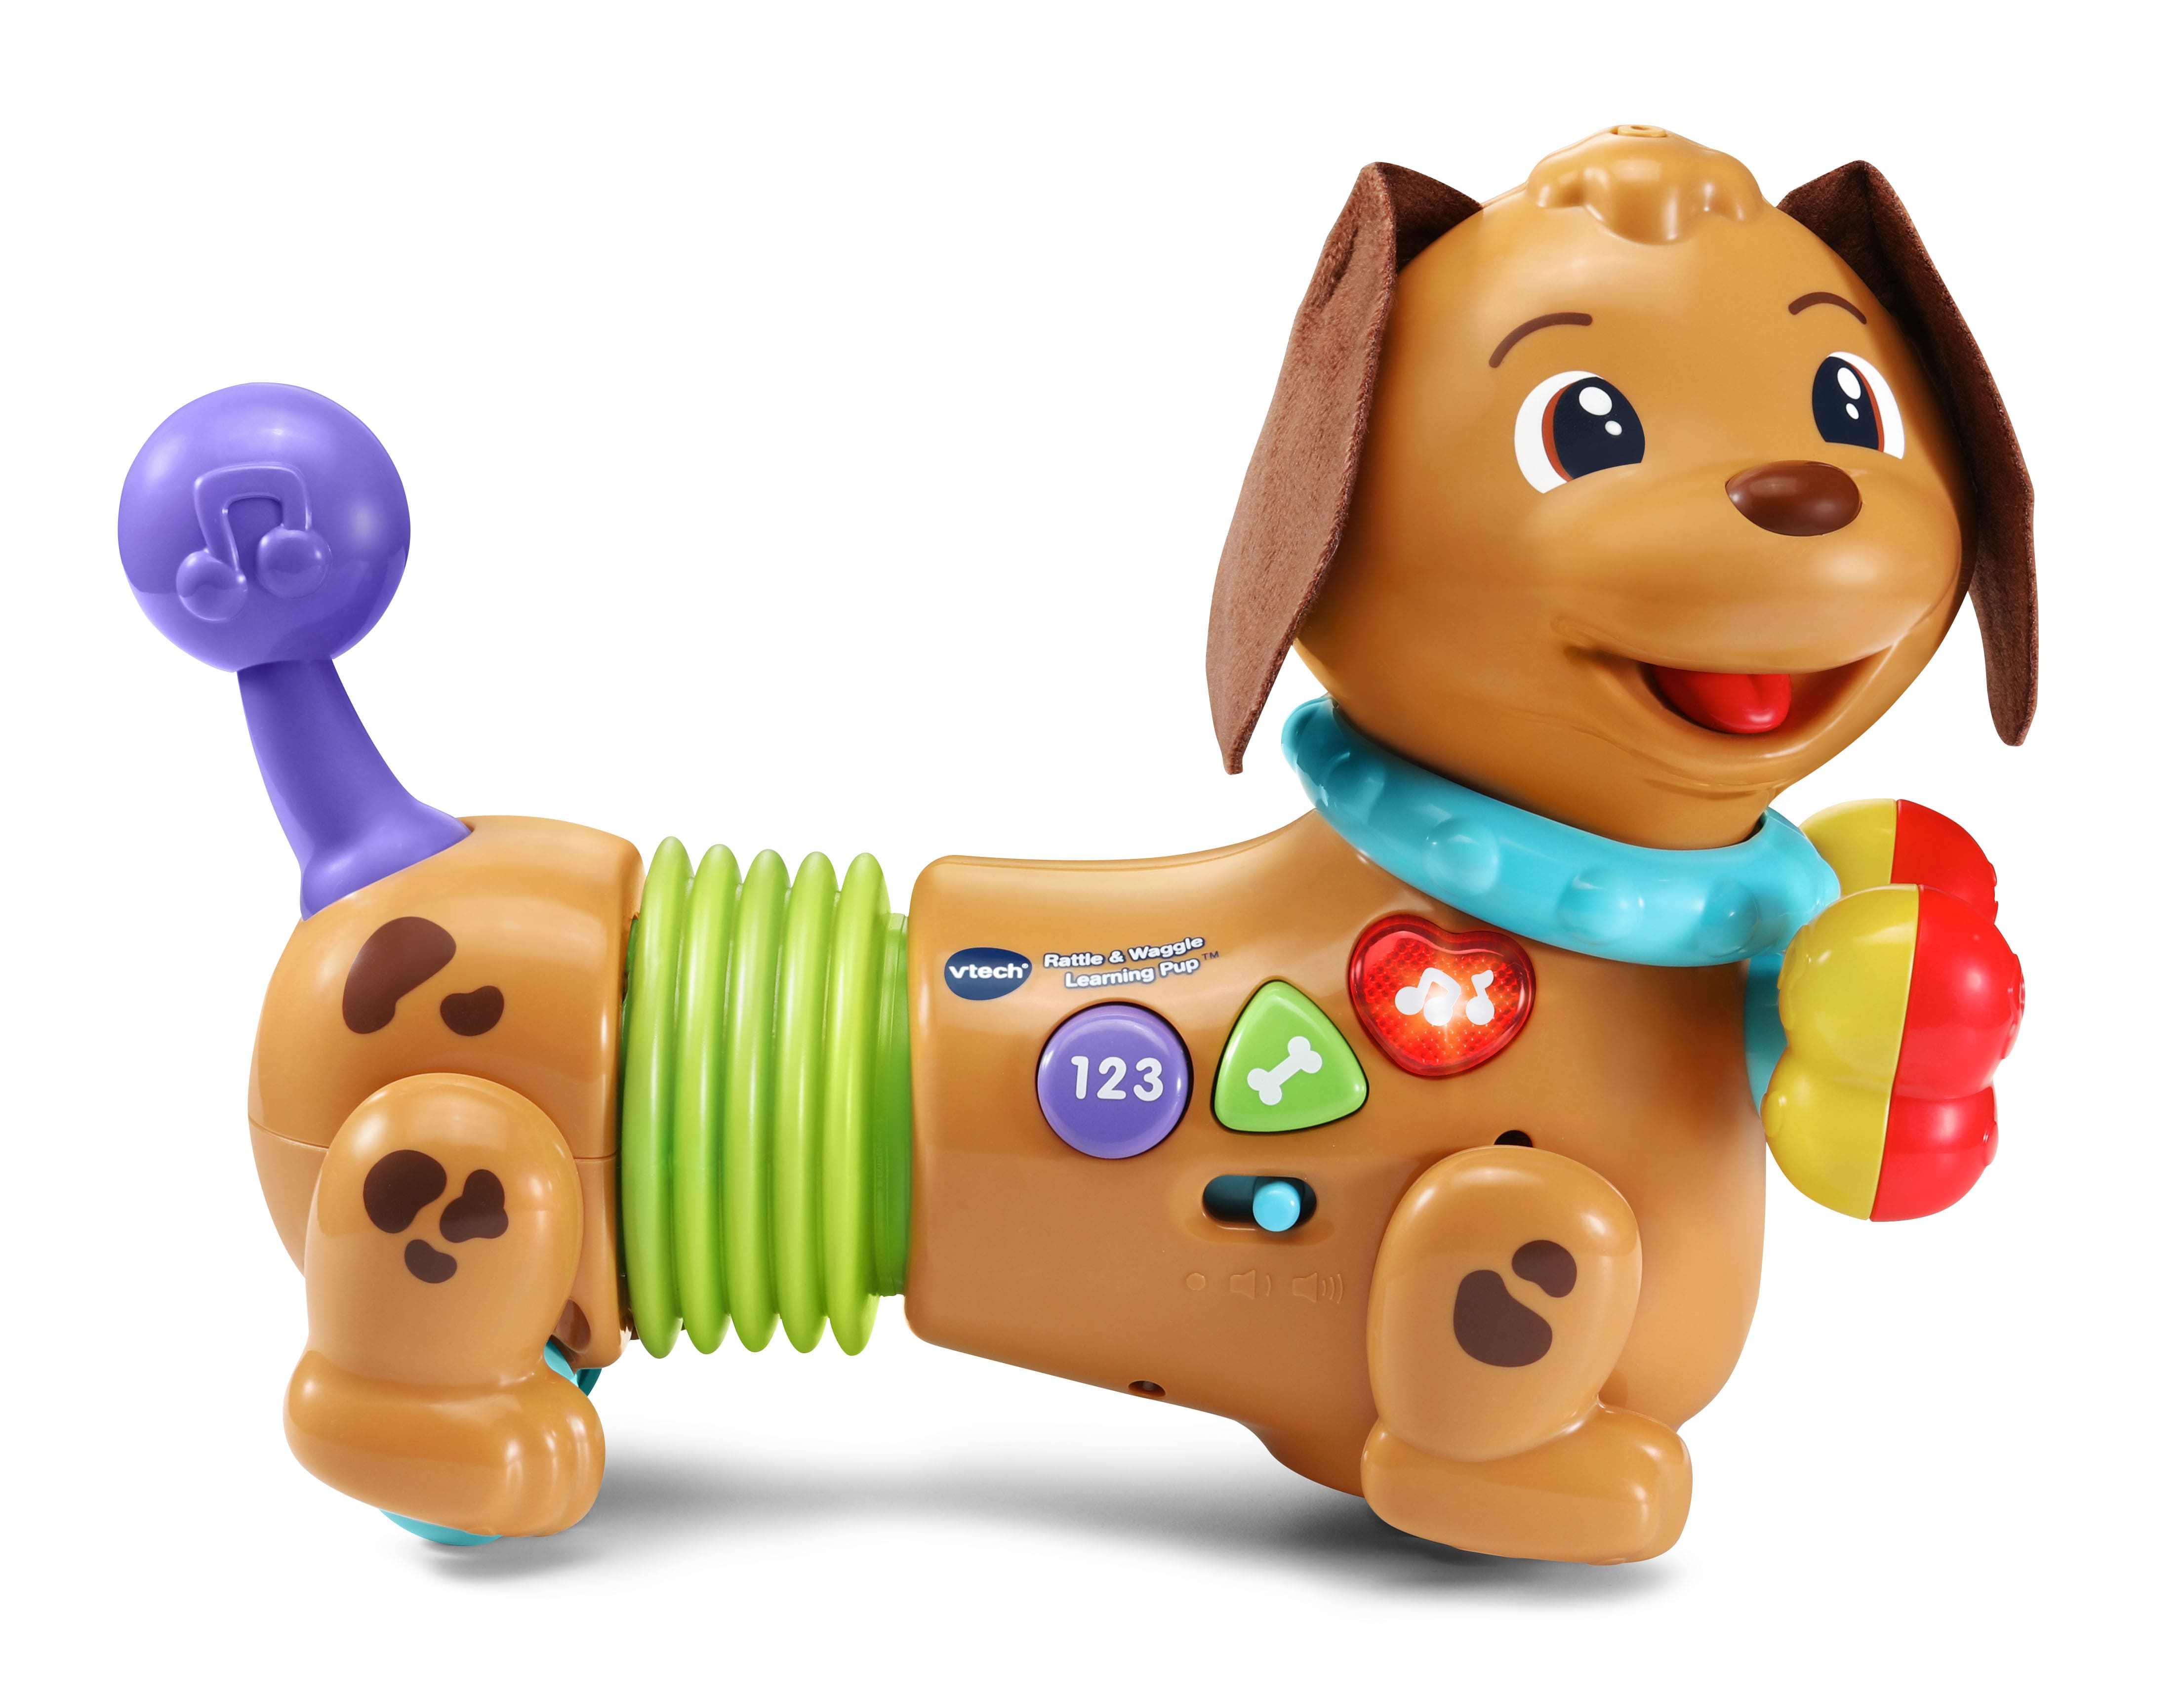 VTech Rattle and Waggle Learning Pup Toy for Toddlers $14.41 + Free Shipping on $35+ or FS w/ Prime or on $25+